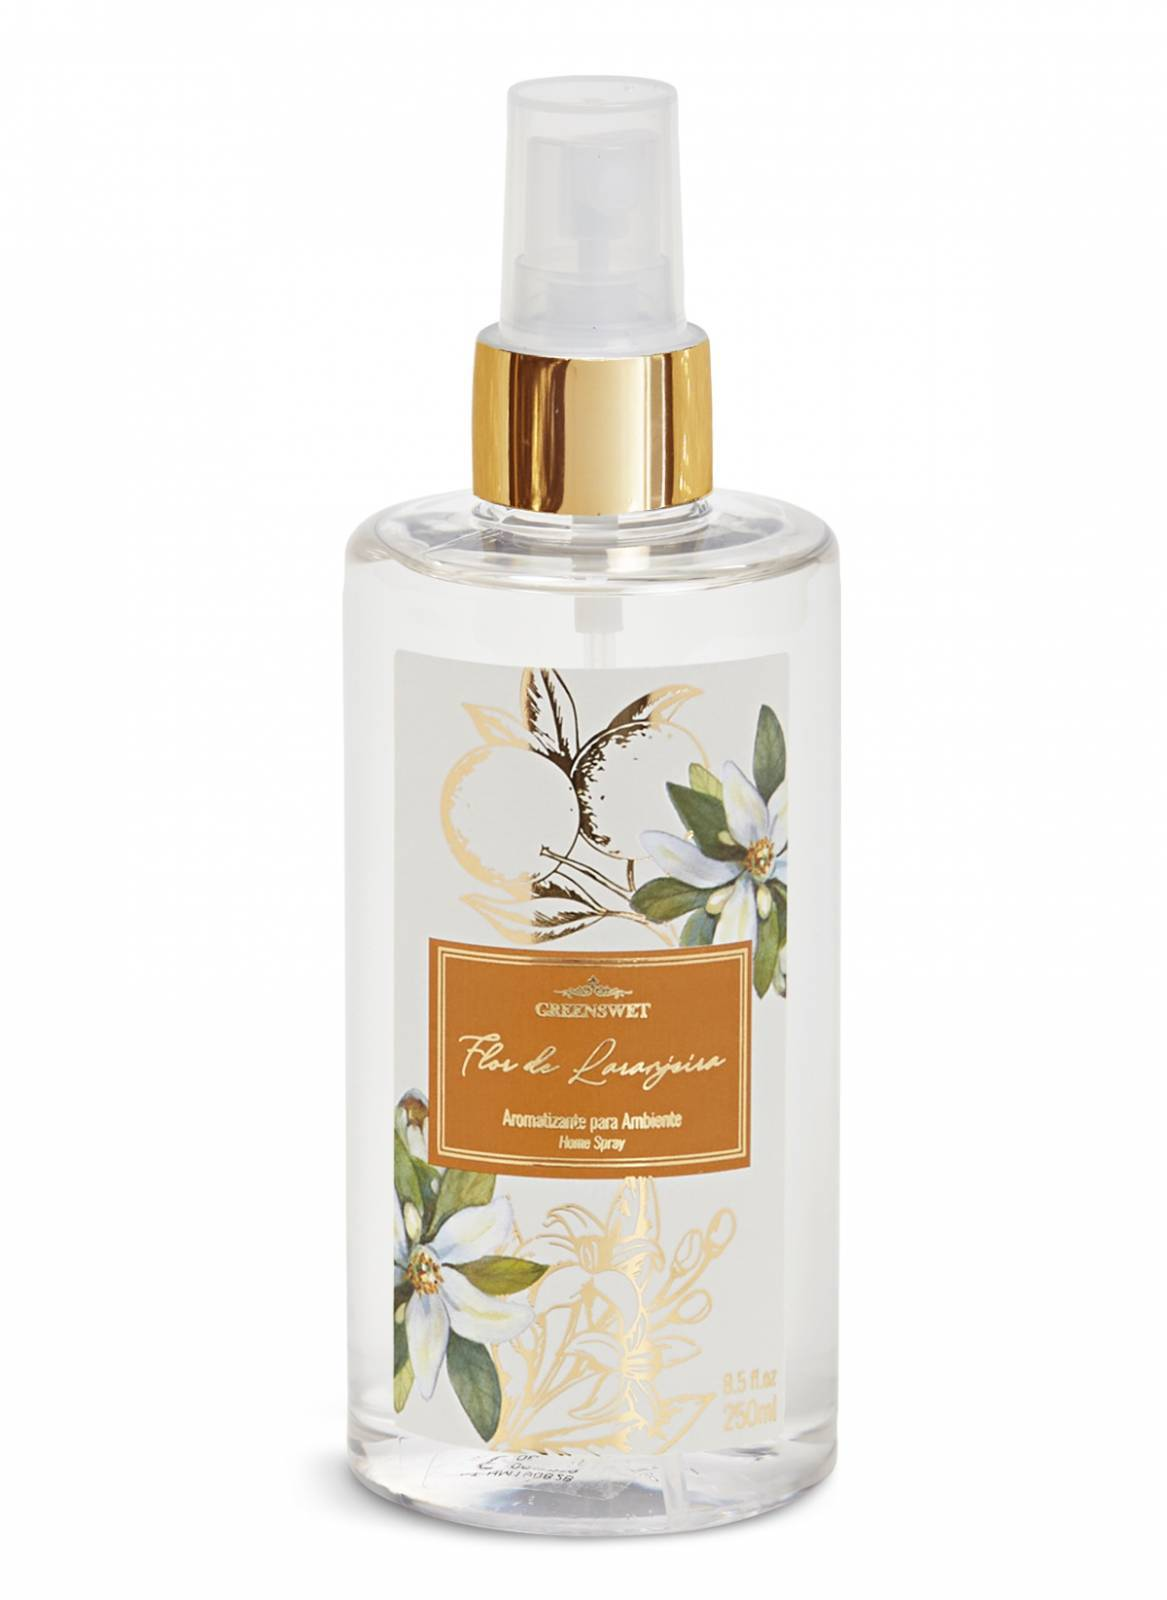 Home Spray 250ml Essência Flor de Laranjeira - Greenswet Aromatizantes